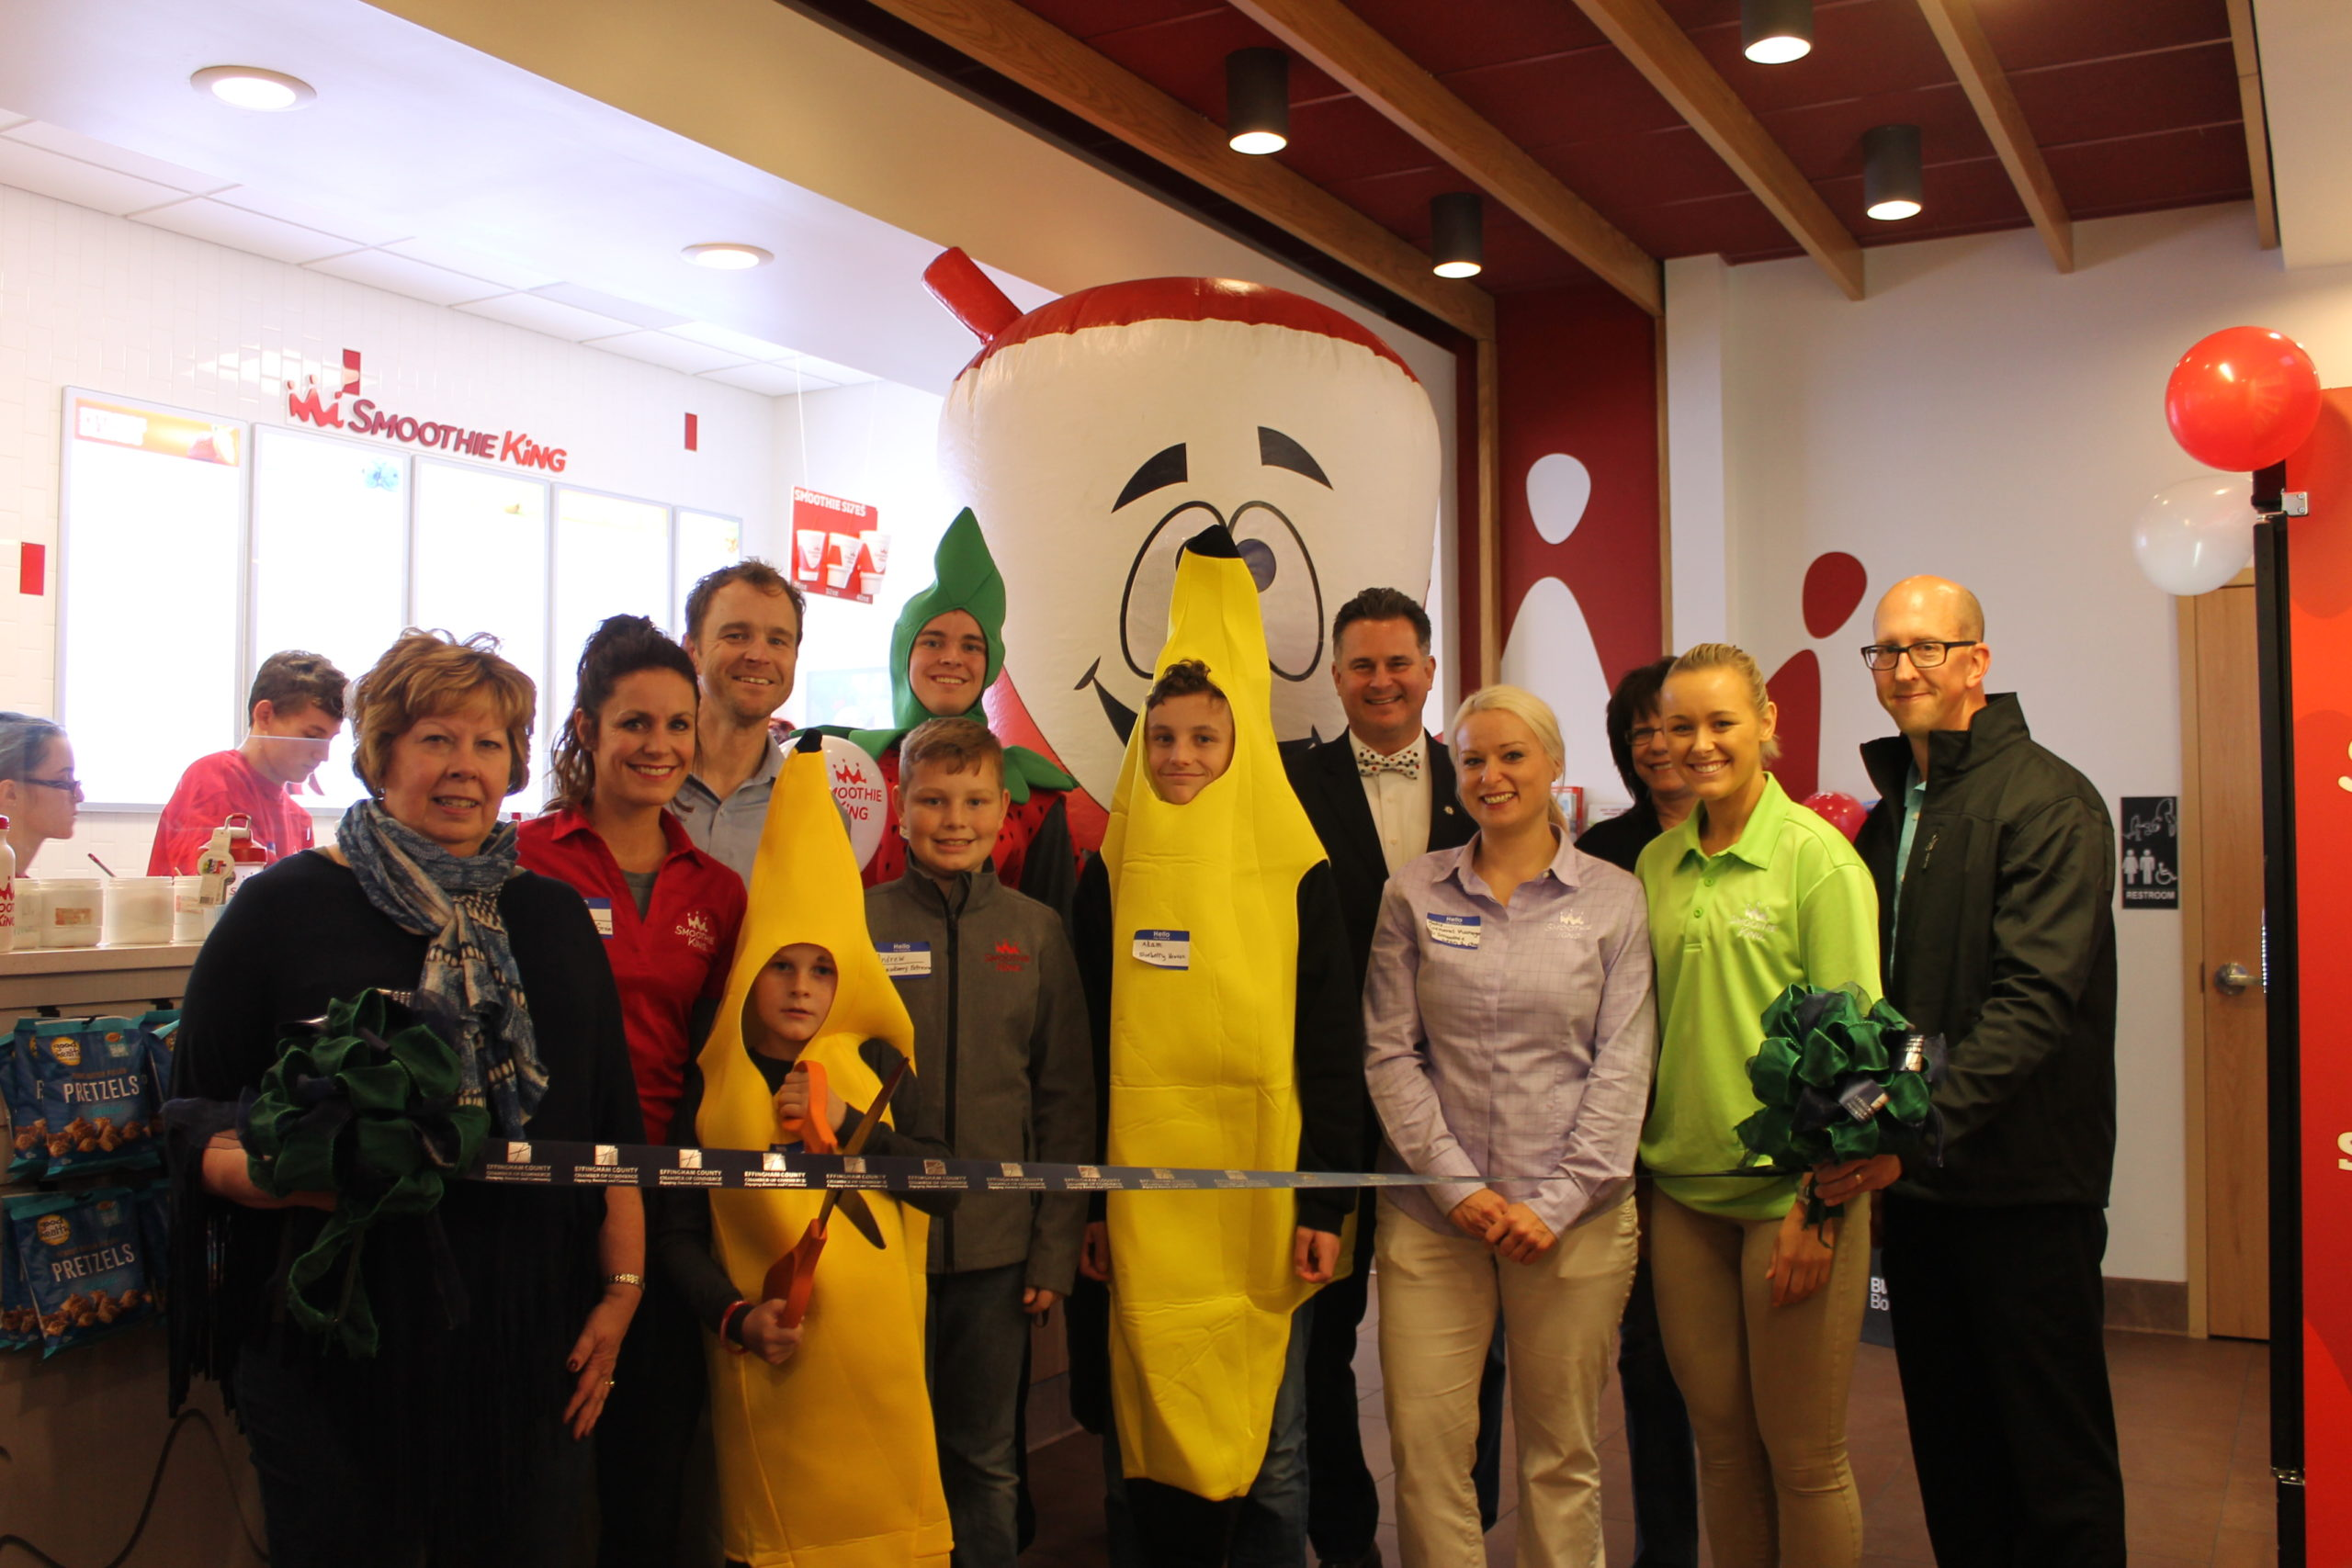 Chamber of Commerce Holds Smoothie King Ribbon Cutting